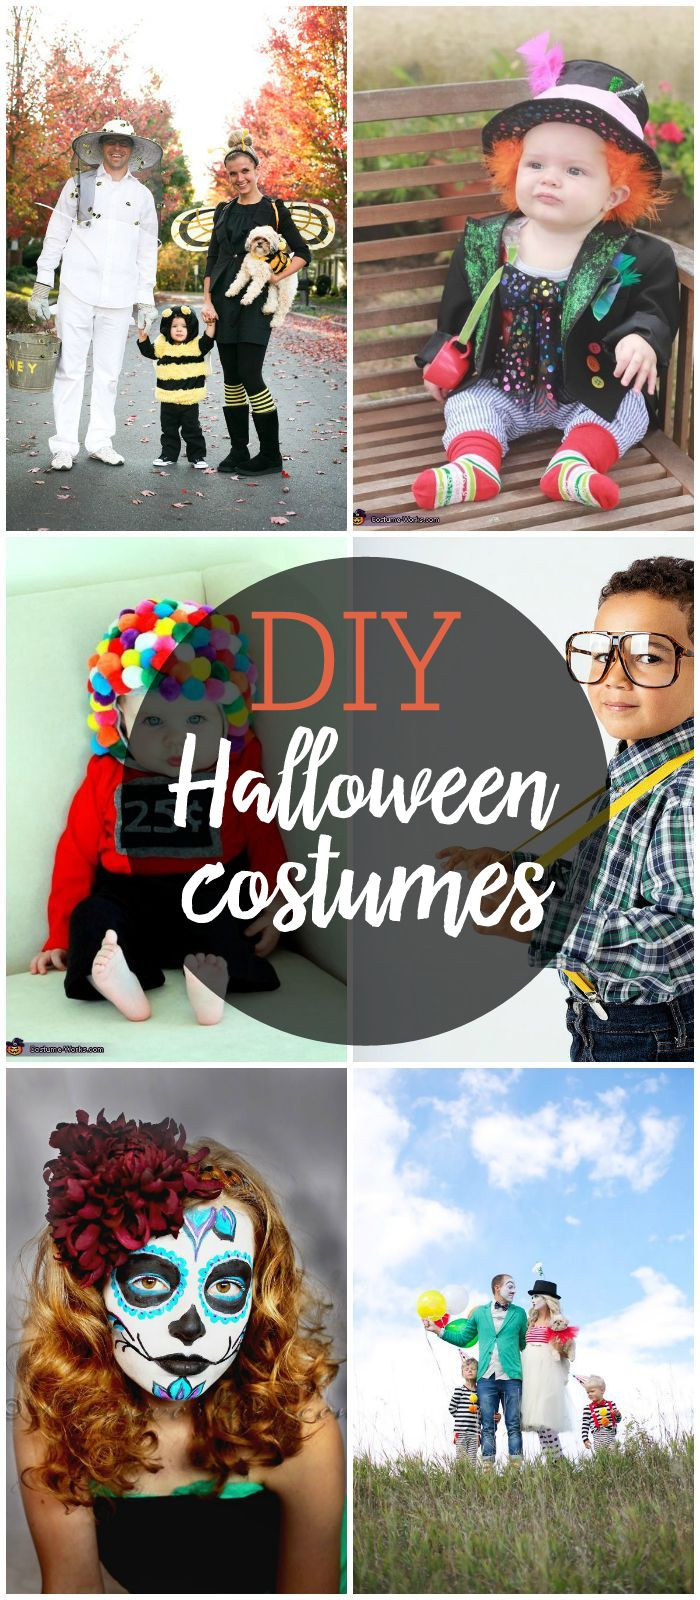 Halloween Diy Costumes  50 DIY Halloween Costume Ideas Lil Luna